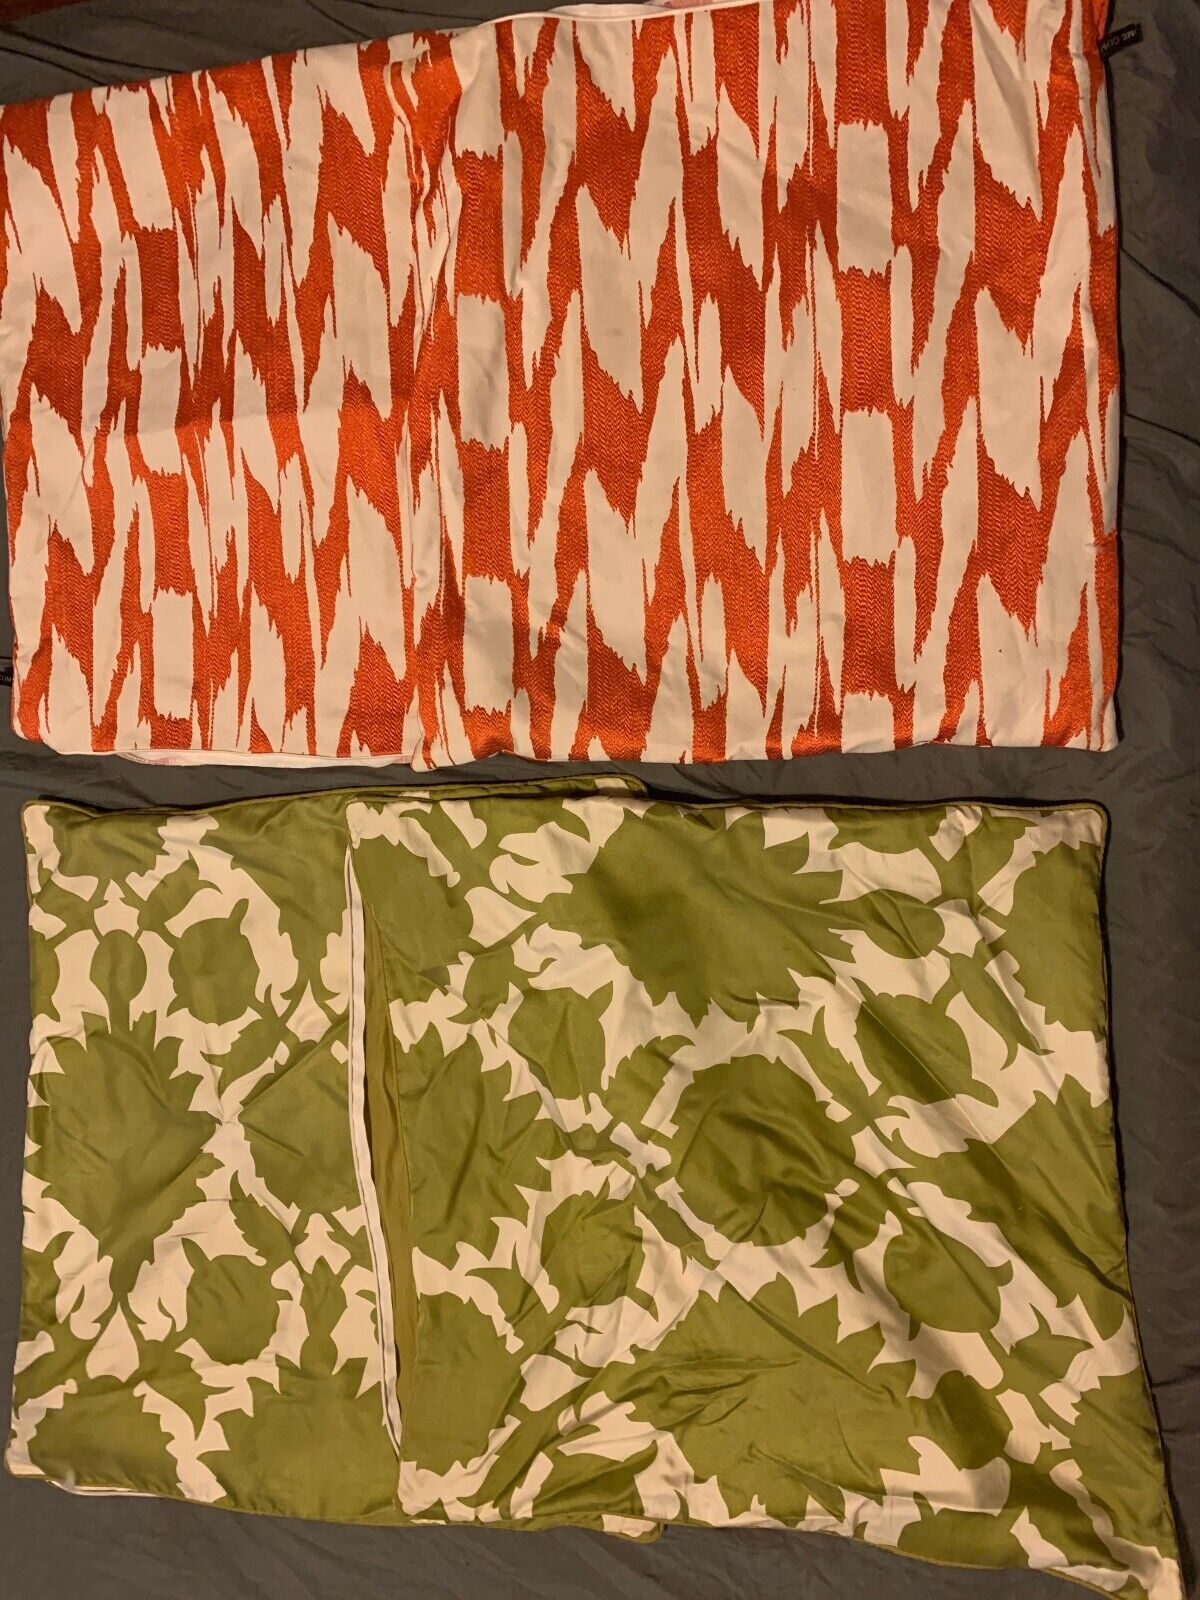 LOT OF 4 THROW PILLOW CASES - PAIR 100 SILK THOMASPAUL PAIR RODEO HOME - $39.99